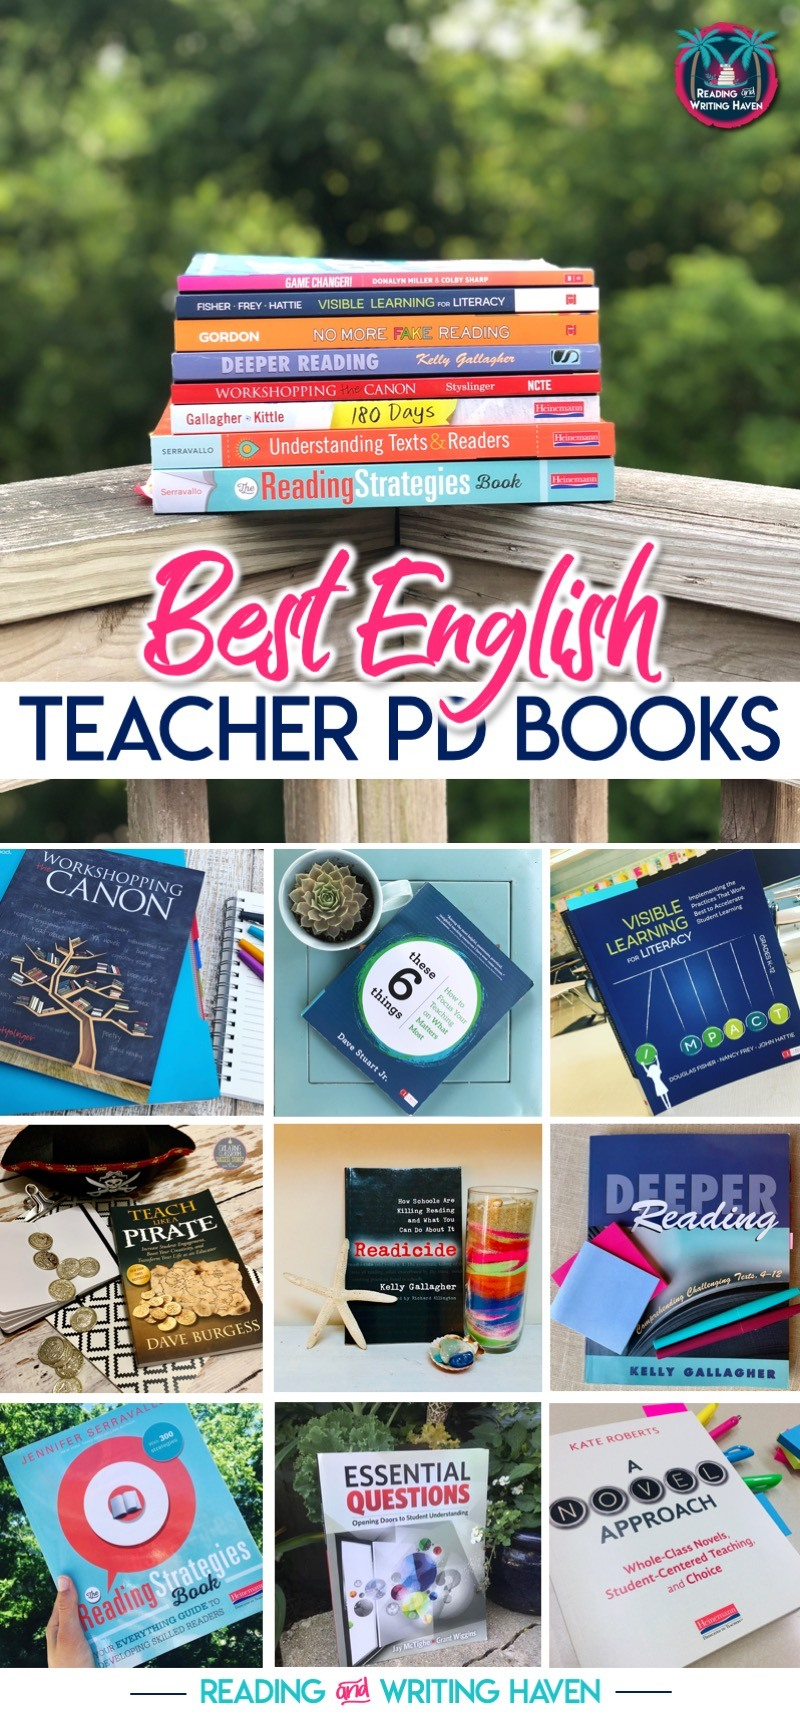 Best books for English teachers as recommended by those practicing in the field #PDBooks #EnglishTeacher